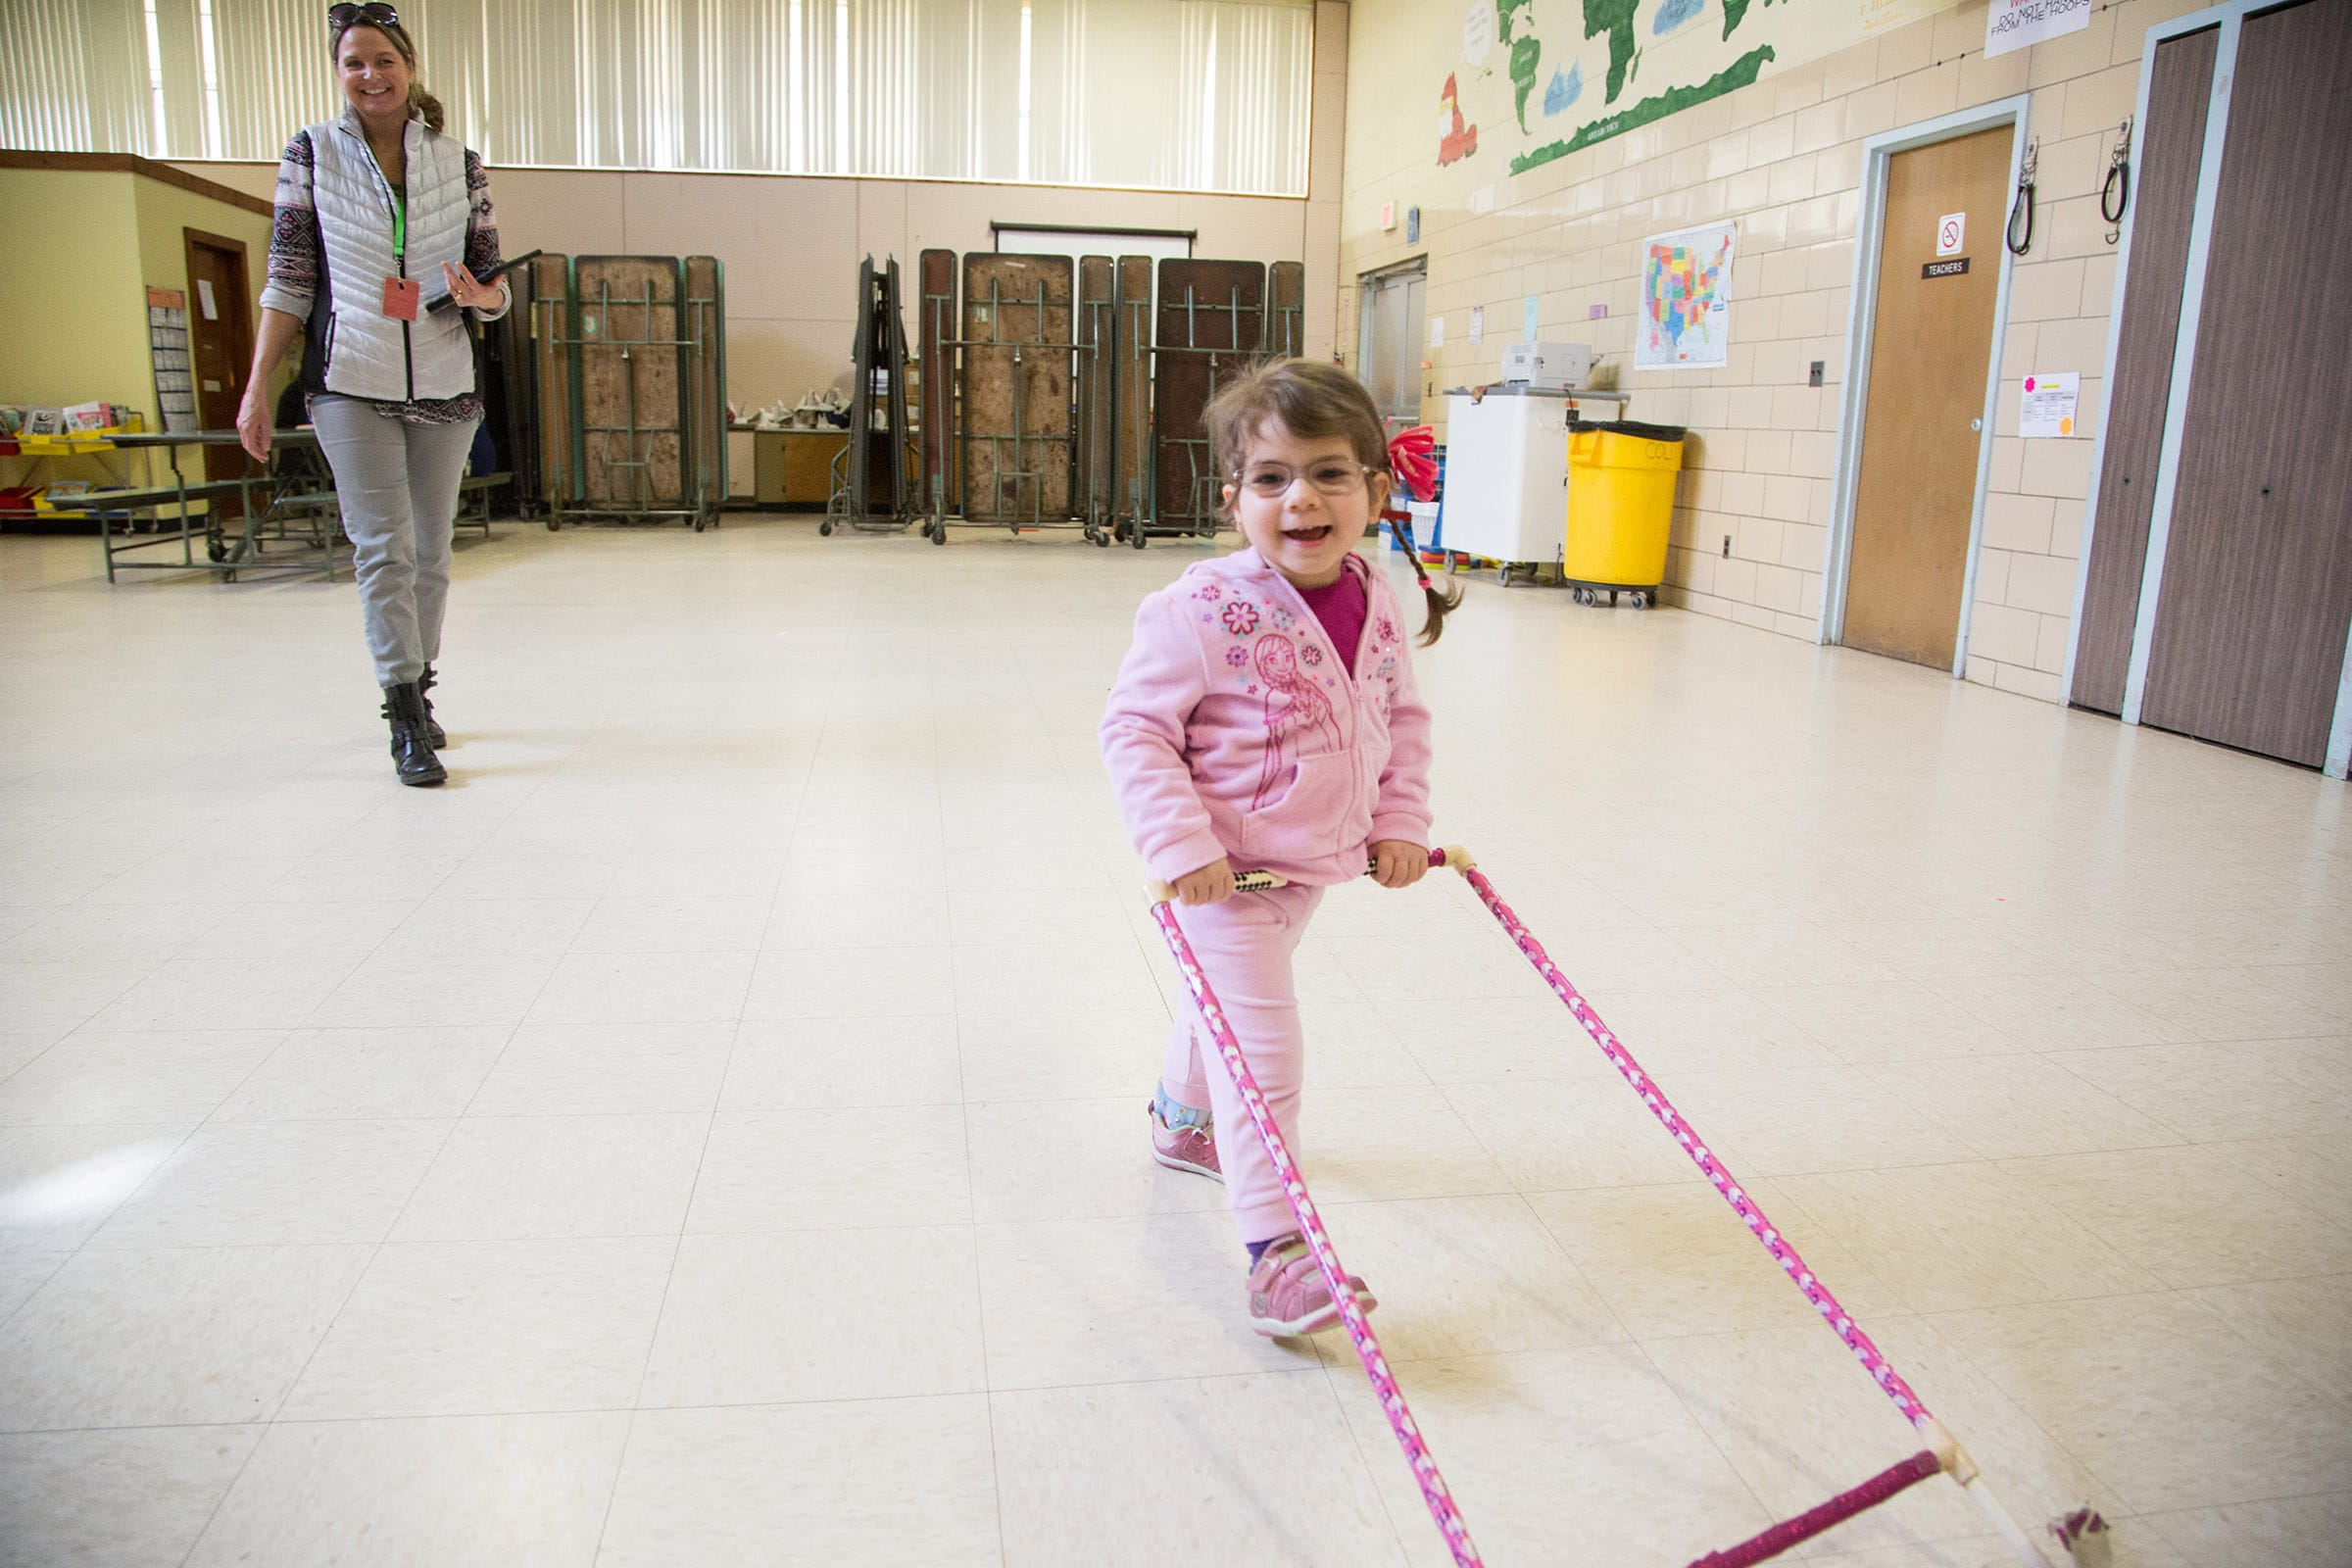 A young girl navigates her school during an orientation and mobility lesson with a teacher.